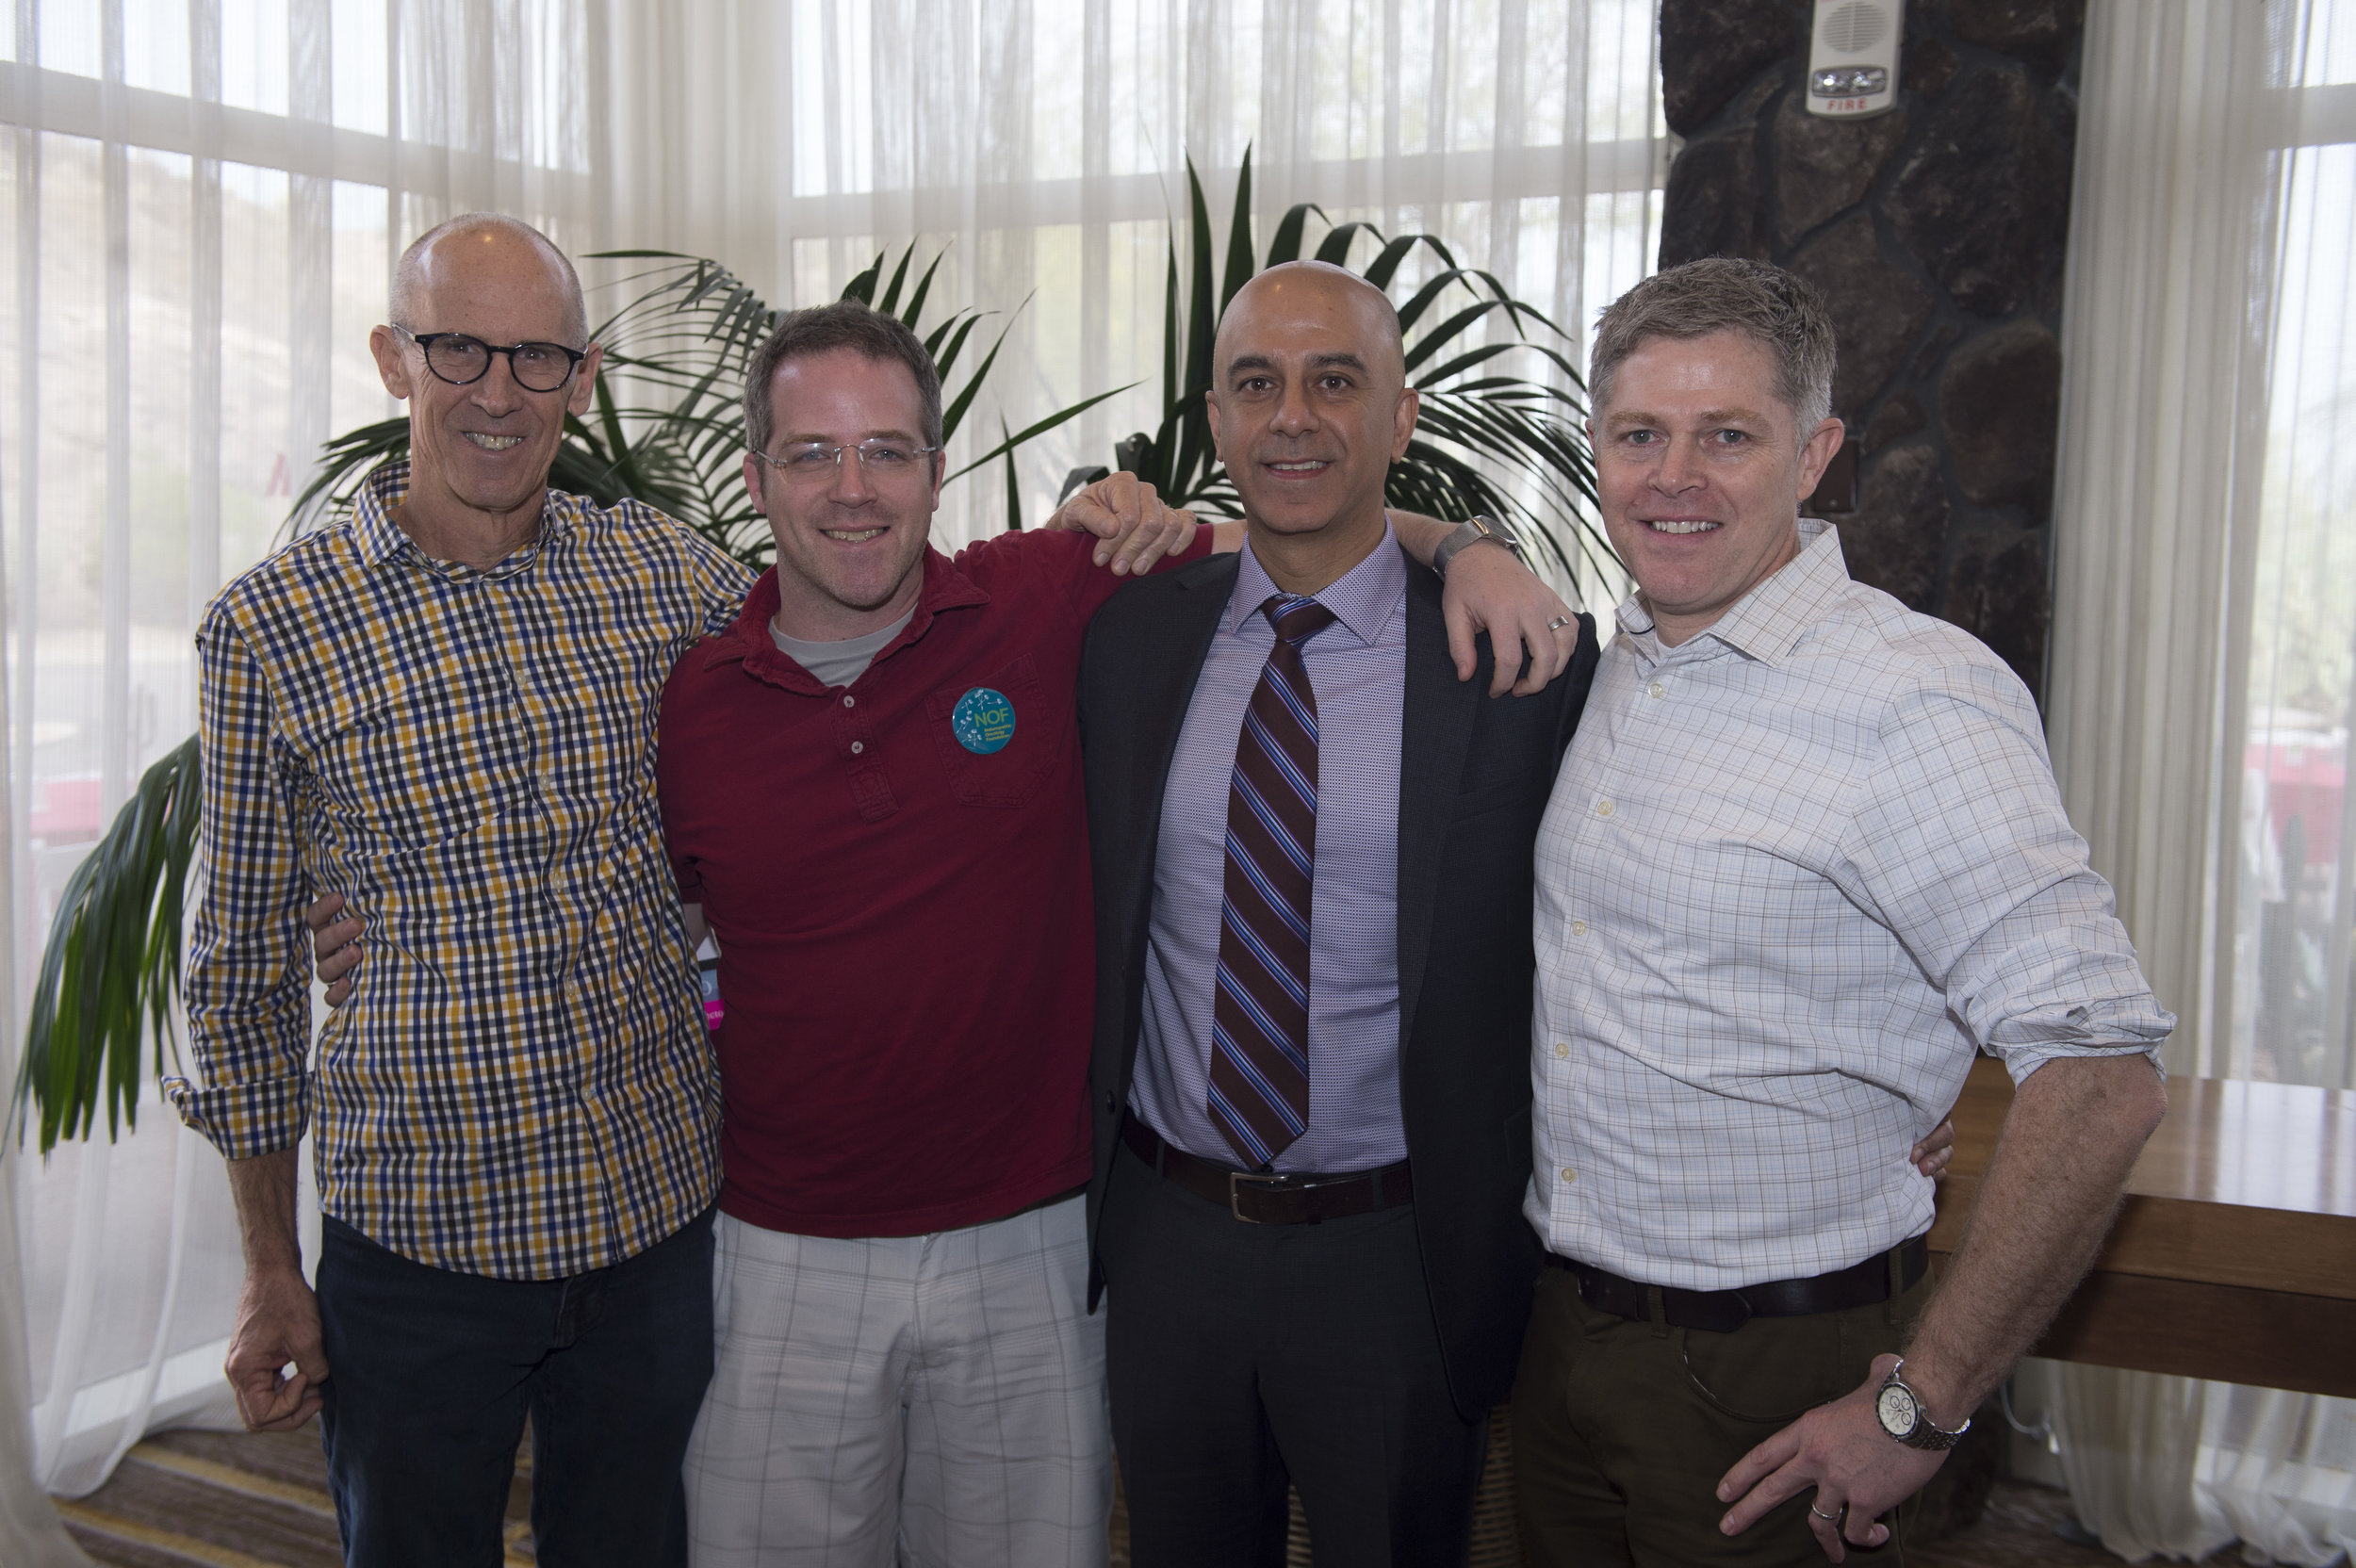 OncANP Residency Committee responsible for the OncANP Residency Toolkit   (L to R: Michael Traub, ND, DHANP, FABNO; Dave Allerdice, ND, FABNO; Gurdev Parmar, ND, FABNO; Chad Aschtgen, ND, FABNO  ~  Not Pictured: Dan Lander, ND, FABNO